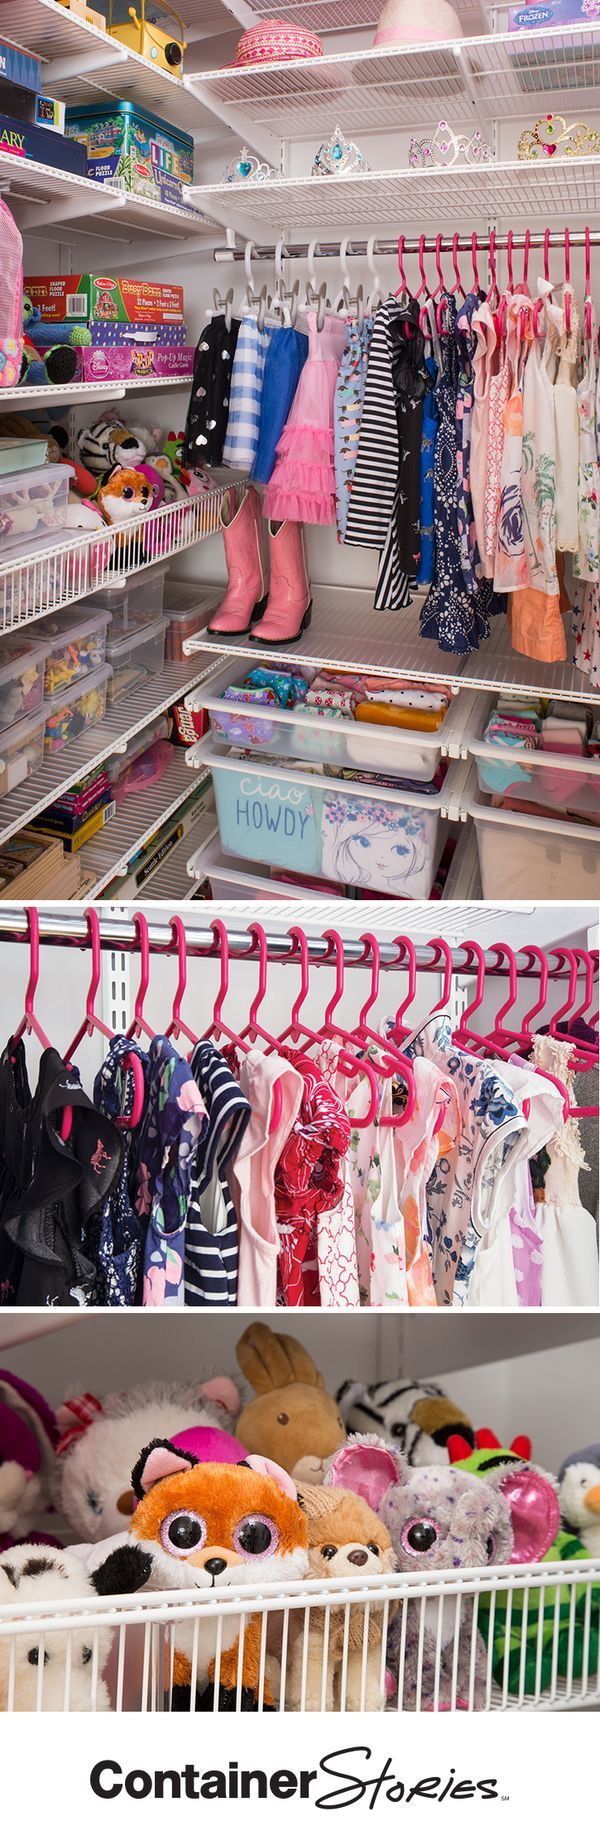 There are so many things to love about this closet – from the pink tubular hangers and Solid Drawers to the elfa Shelf Baskets that corral stuffed animals.